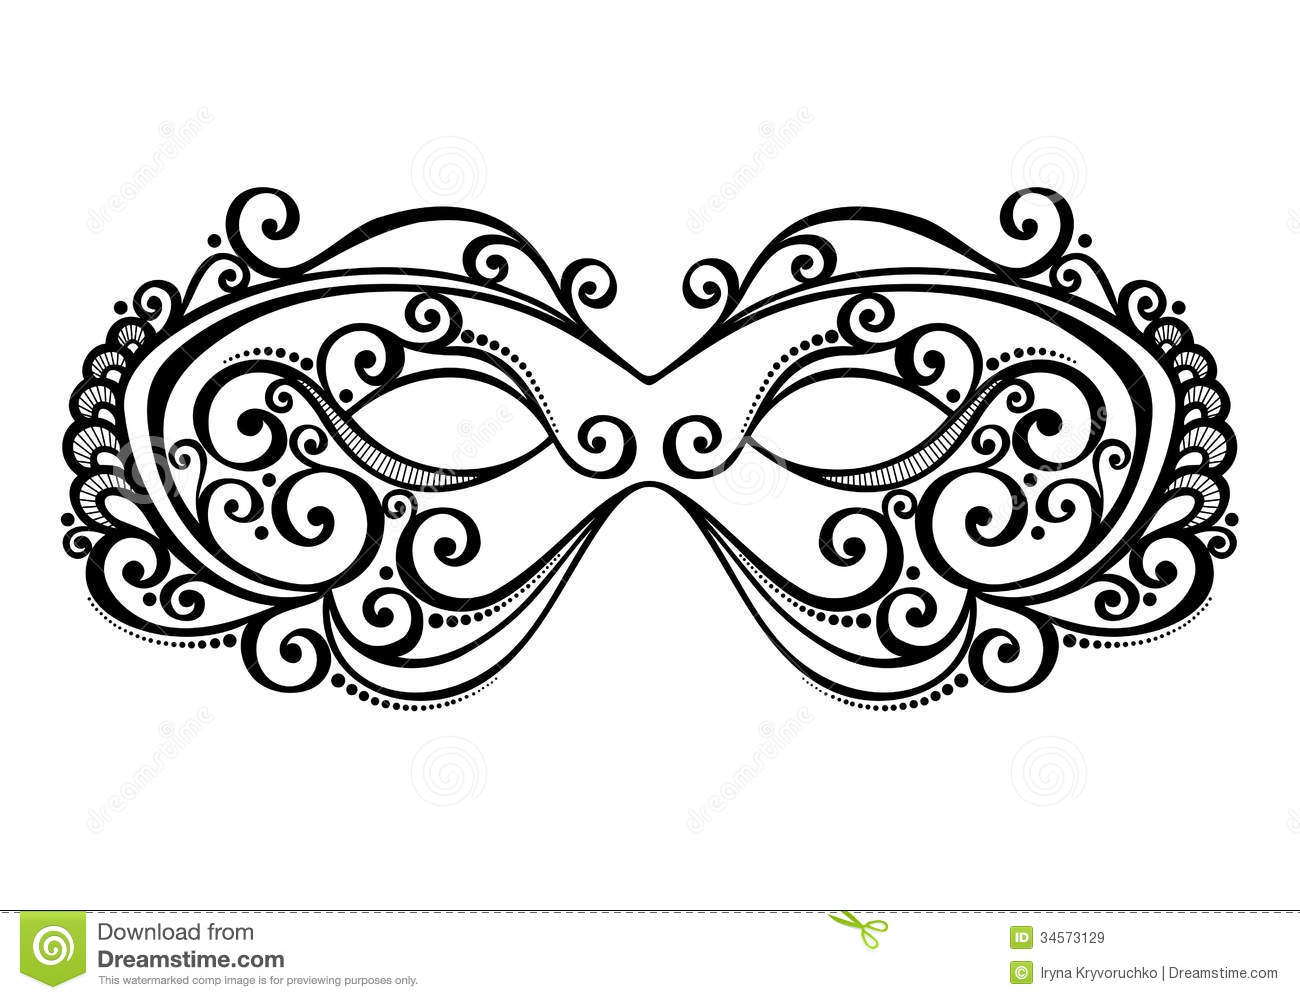 Masquerade clipart mascara Use beautiful vector And this